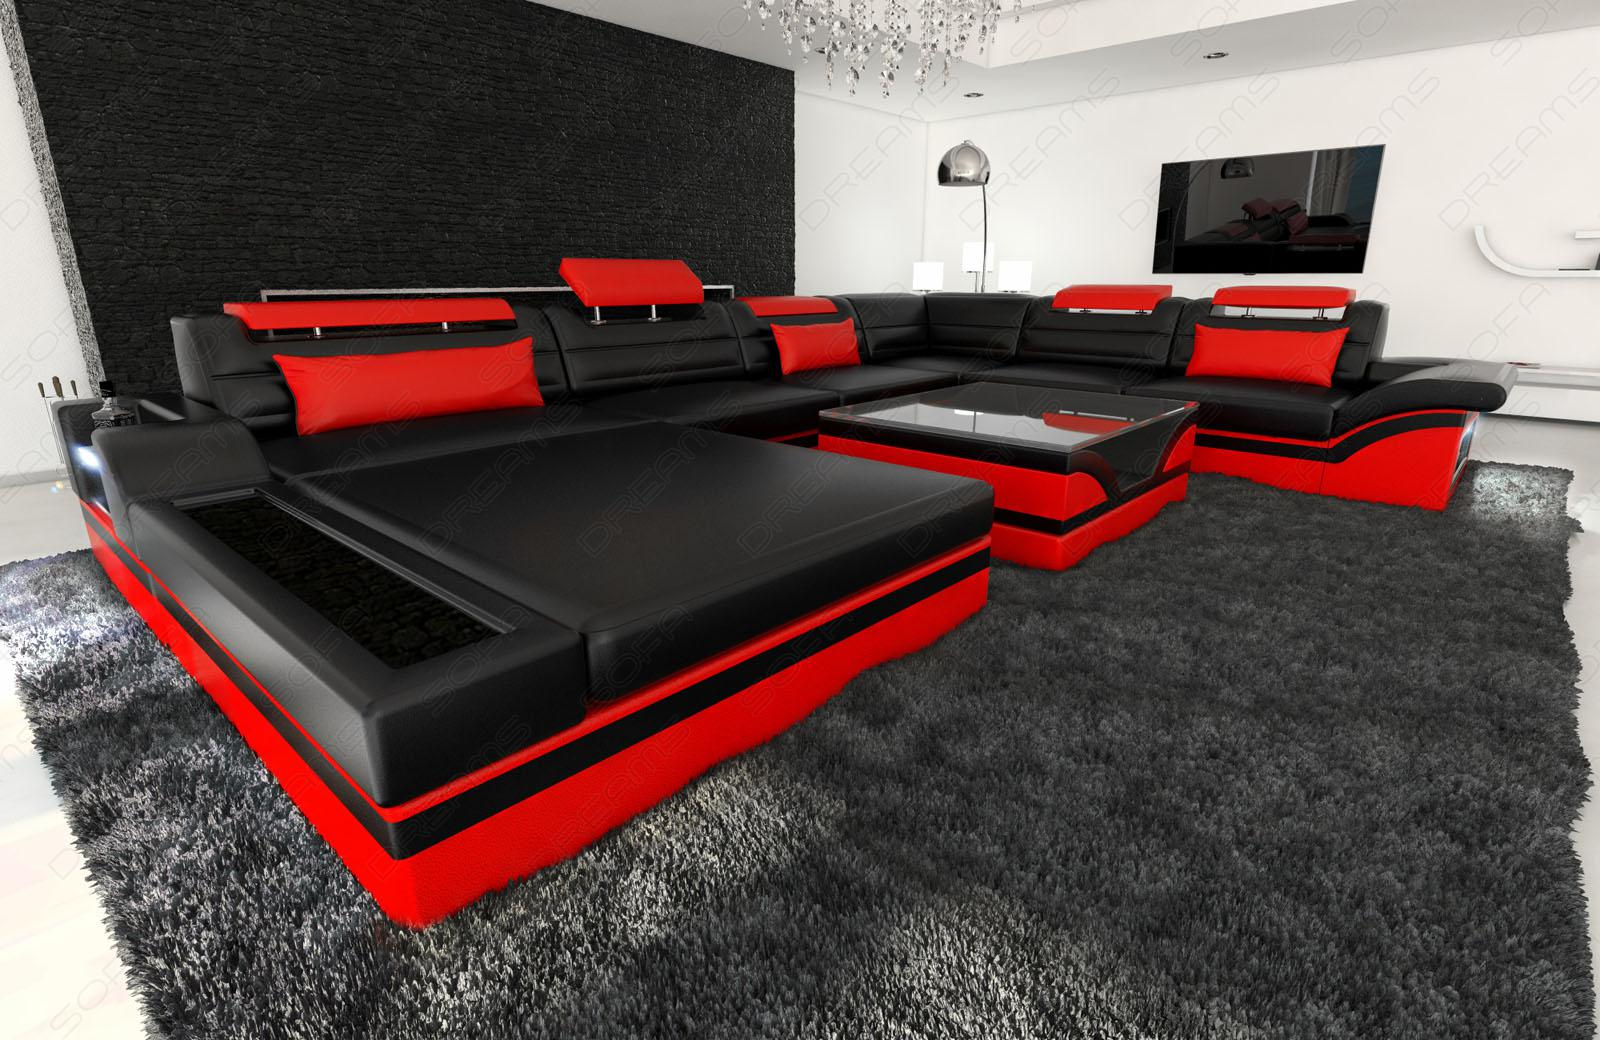 designer wohnlandschaft mezzo xxl mit led schwarz rot. Black Bedroom Furniture Sets. Home Design Ideas